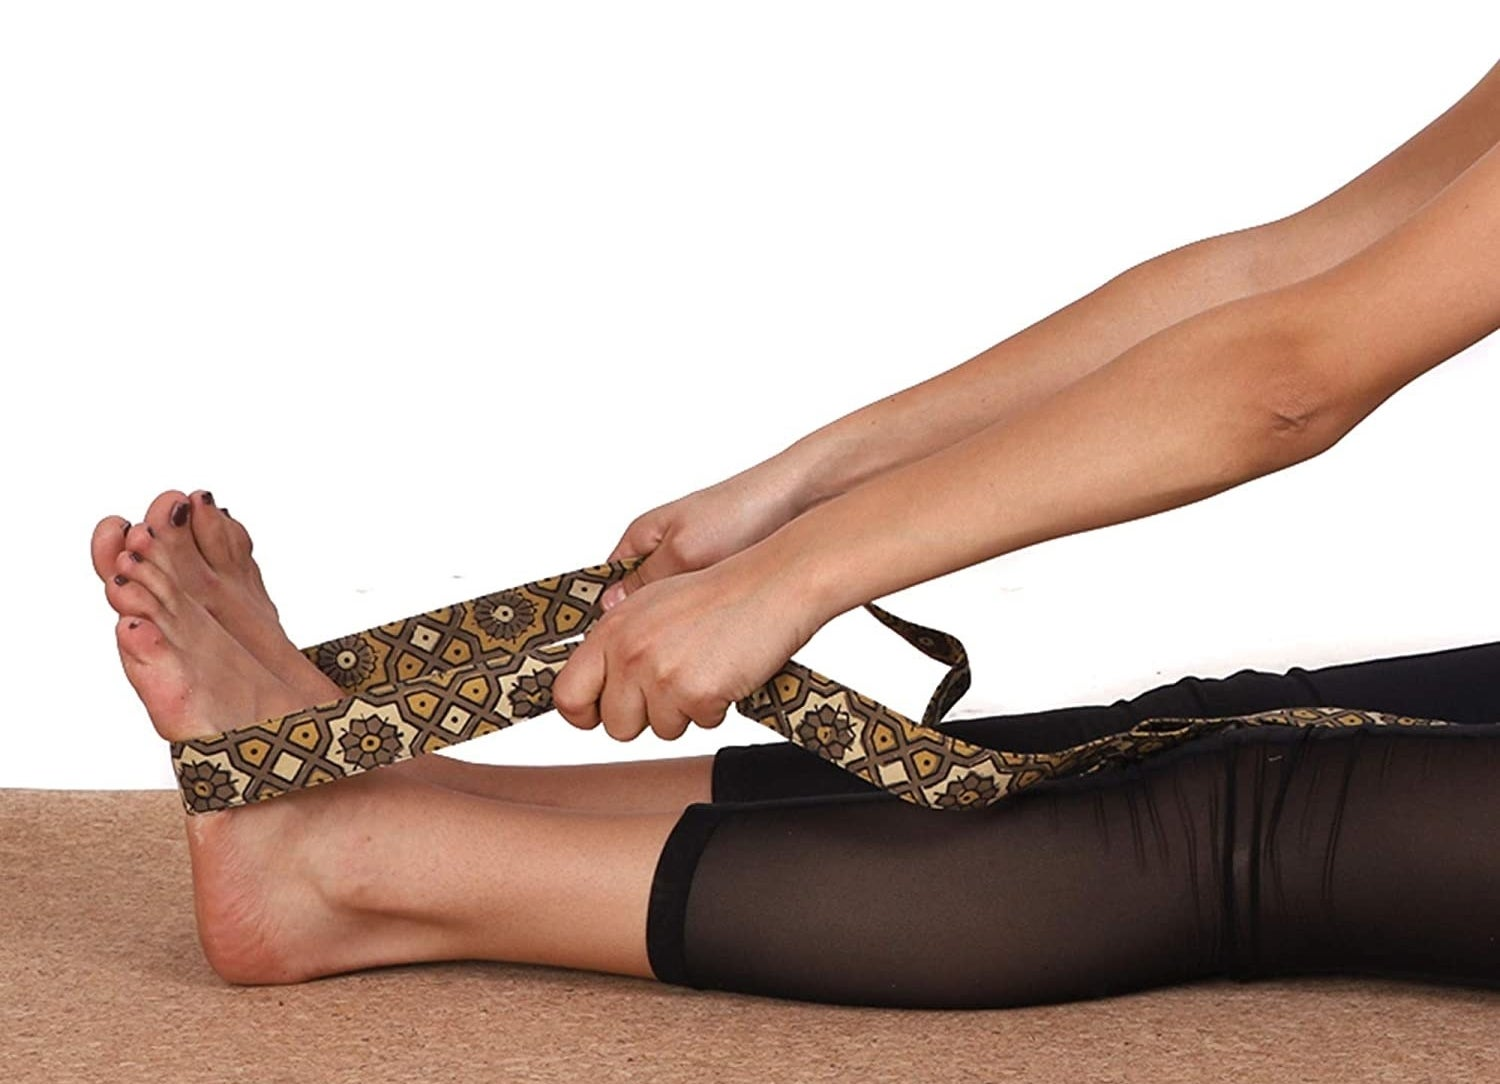 A model using the block-printed strap to stretch her legs